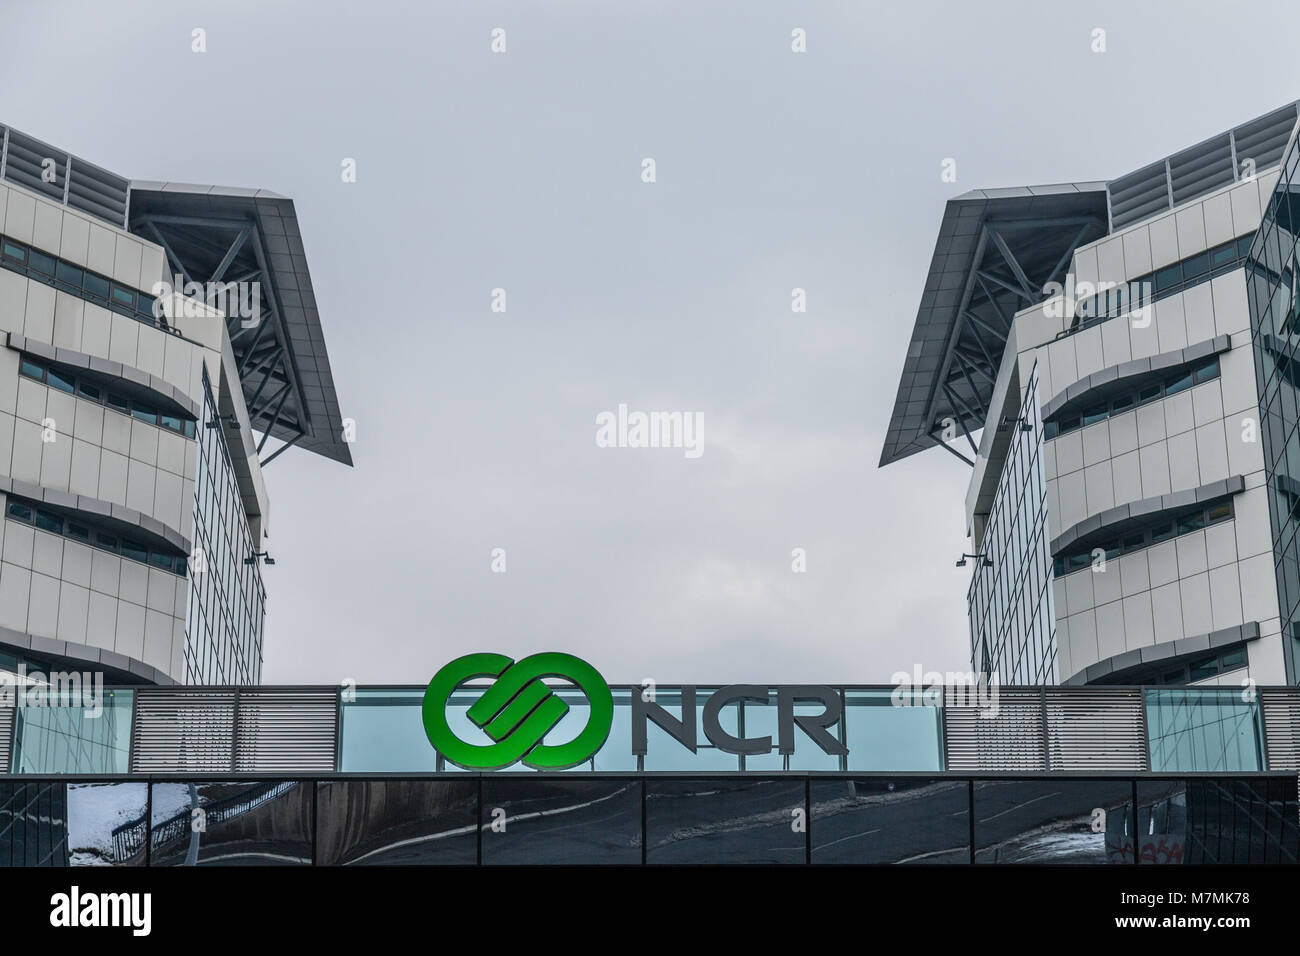 BELGRADE, SERBIA - MARCH 3, 2018: NCR Corporation logo on their main office for Serbia. NCR is one of the leading - Stock Image